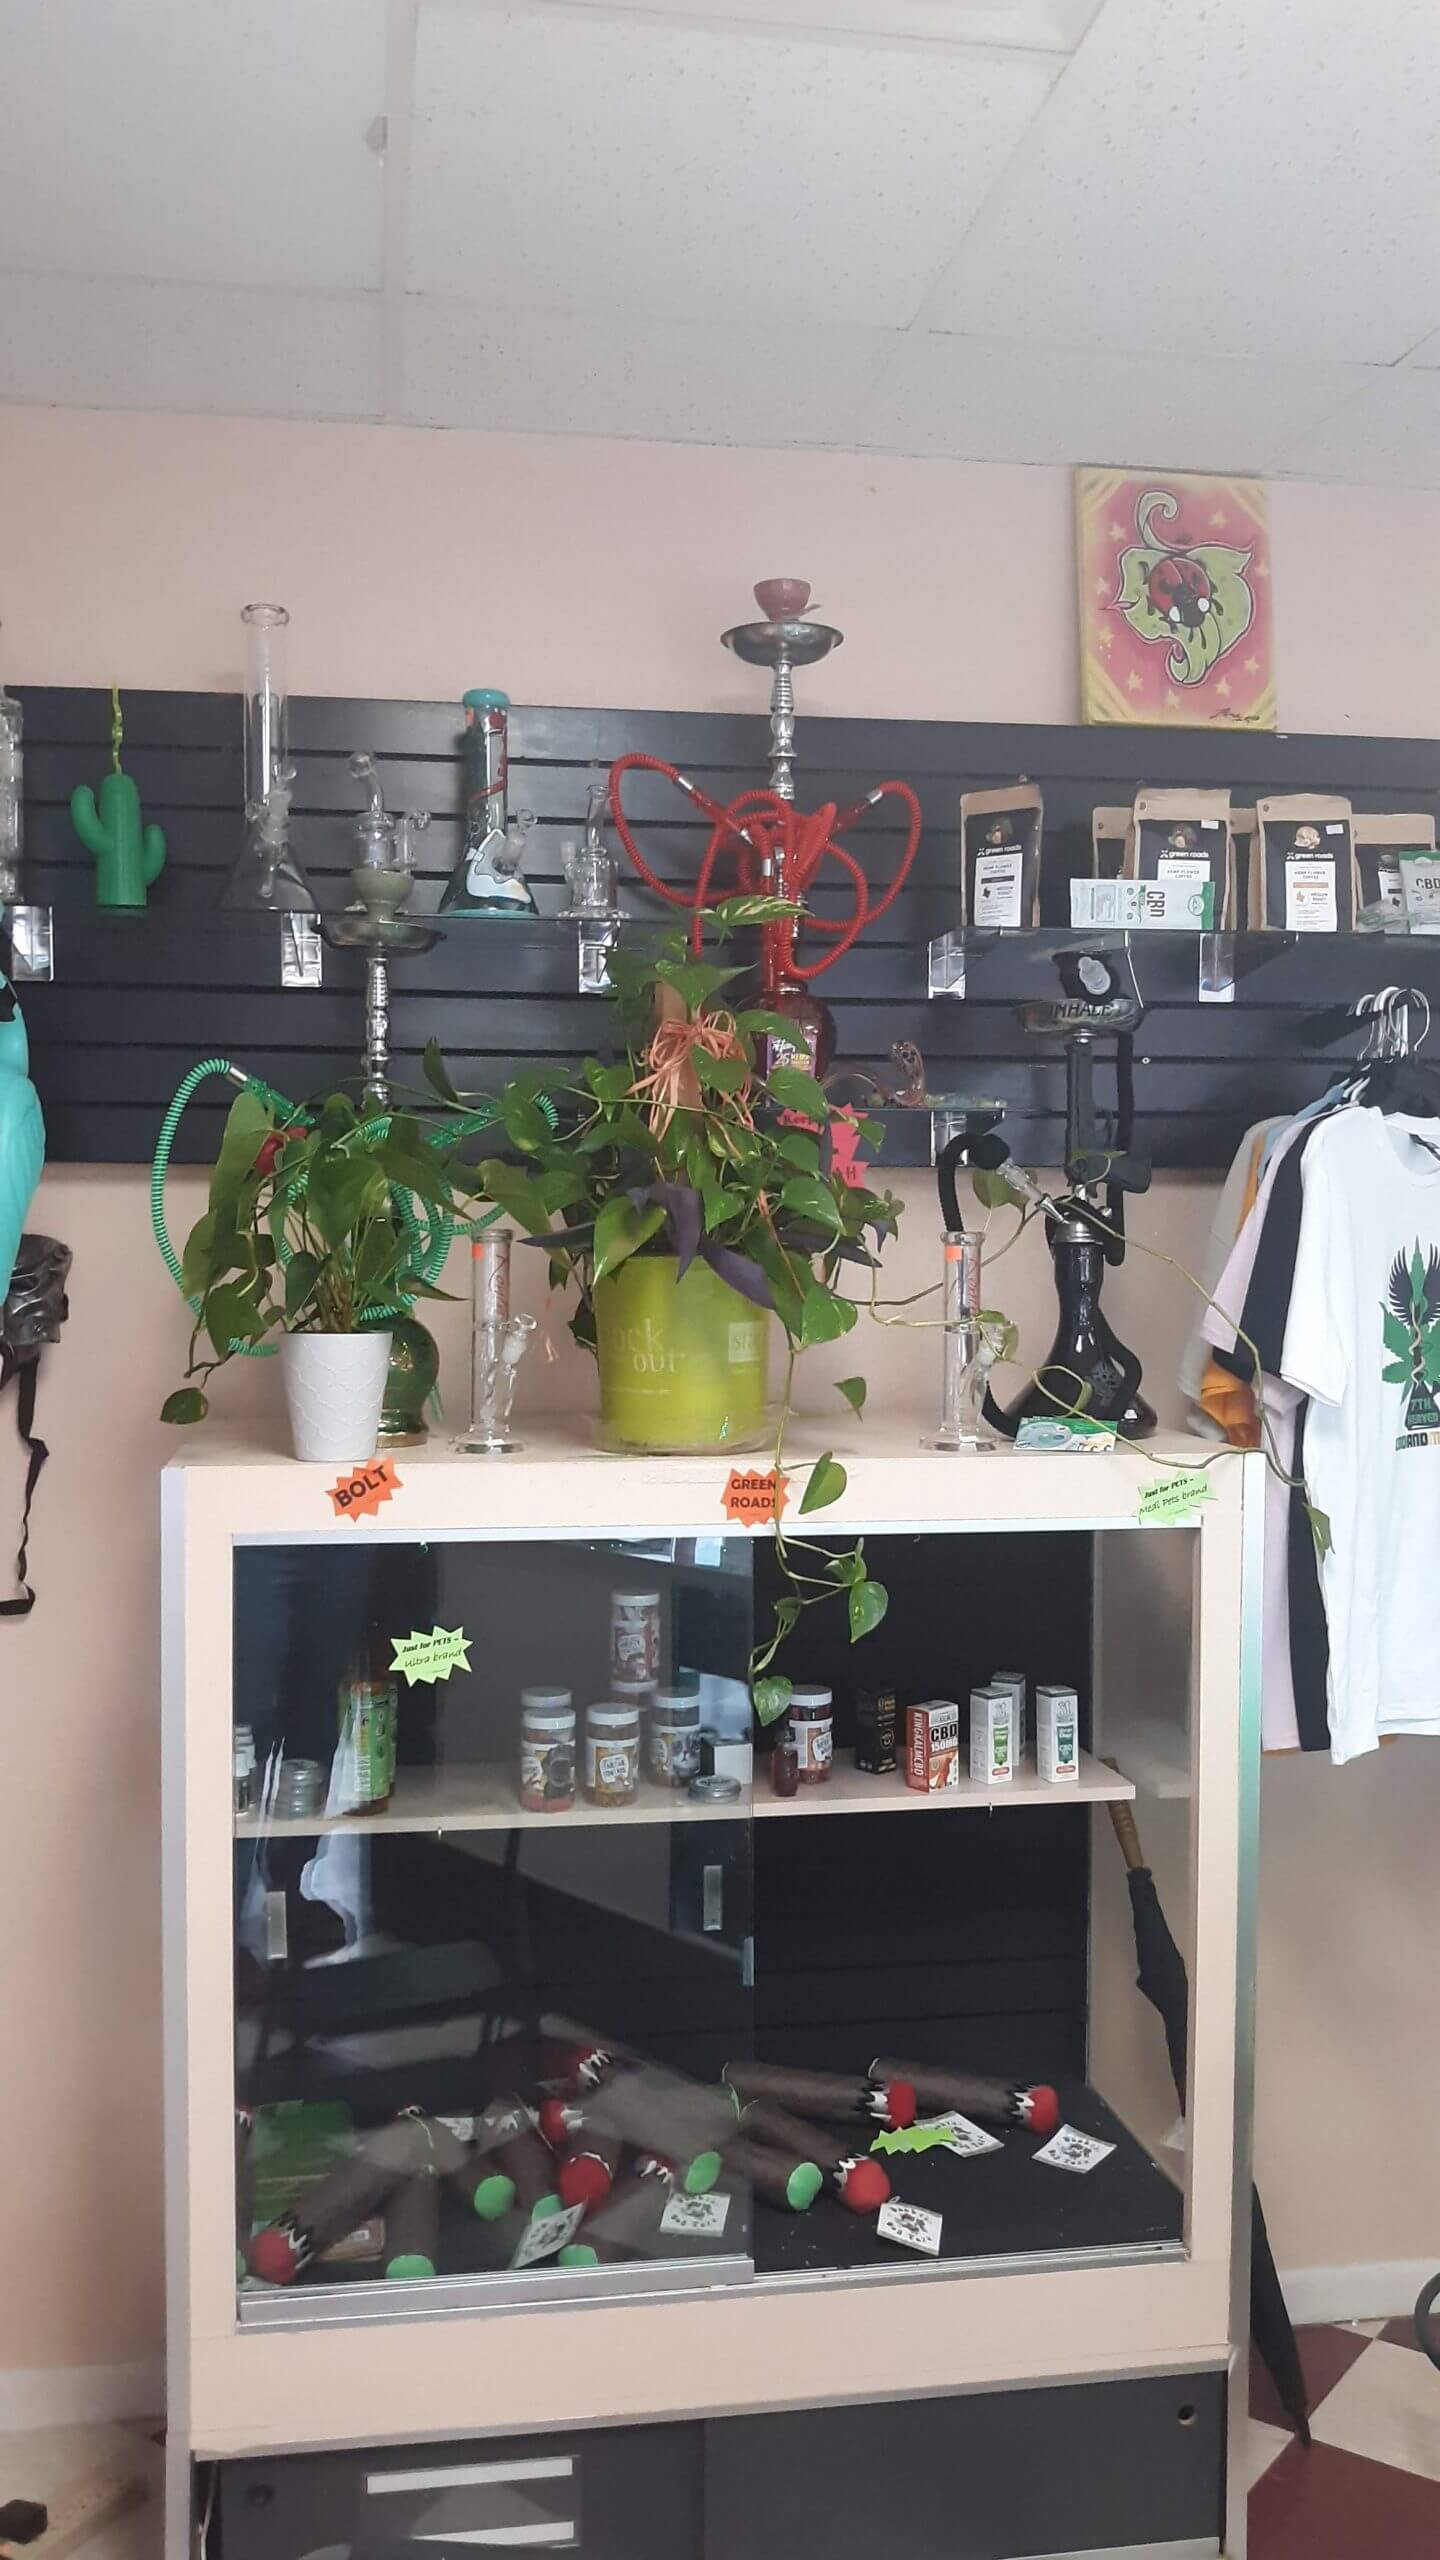 CBD Products, Herbs, bath Booms, Incense and edibles For Sales In Our Store In Killeen, TX (69)